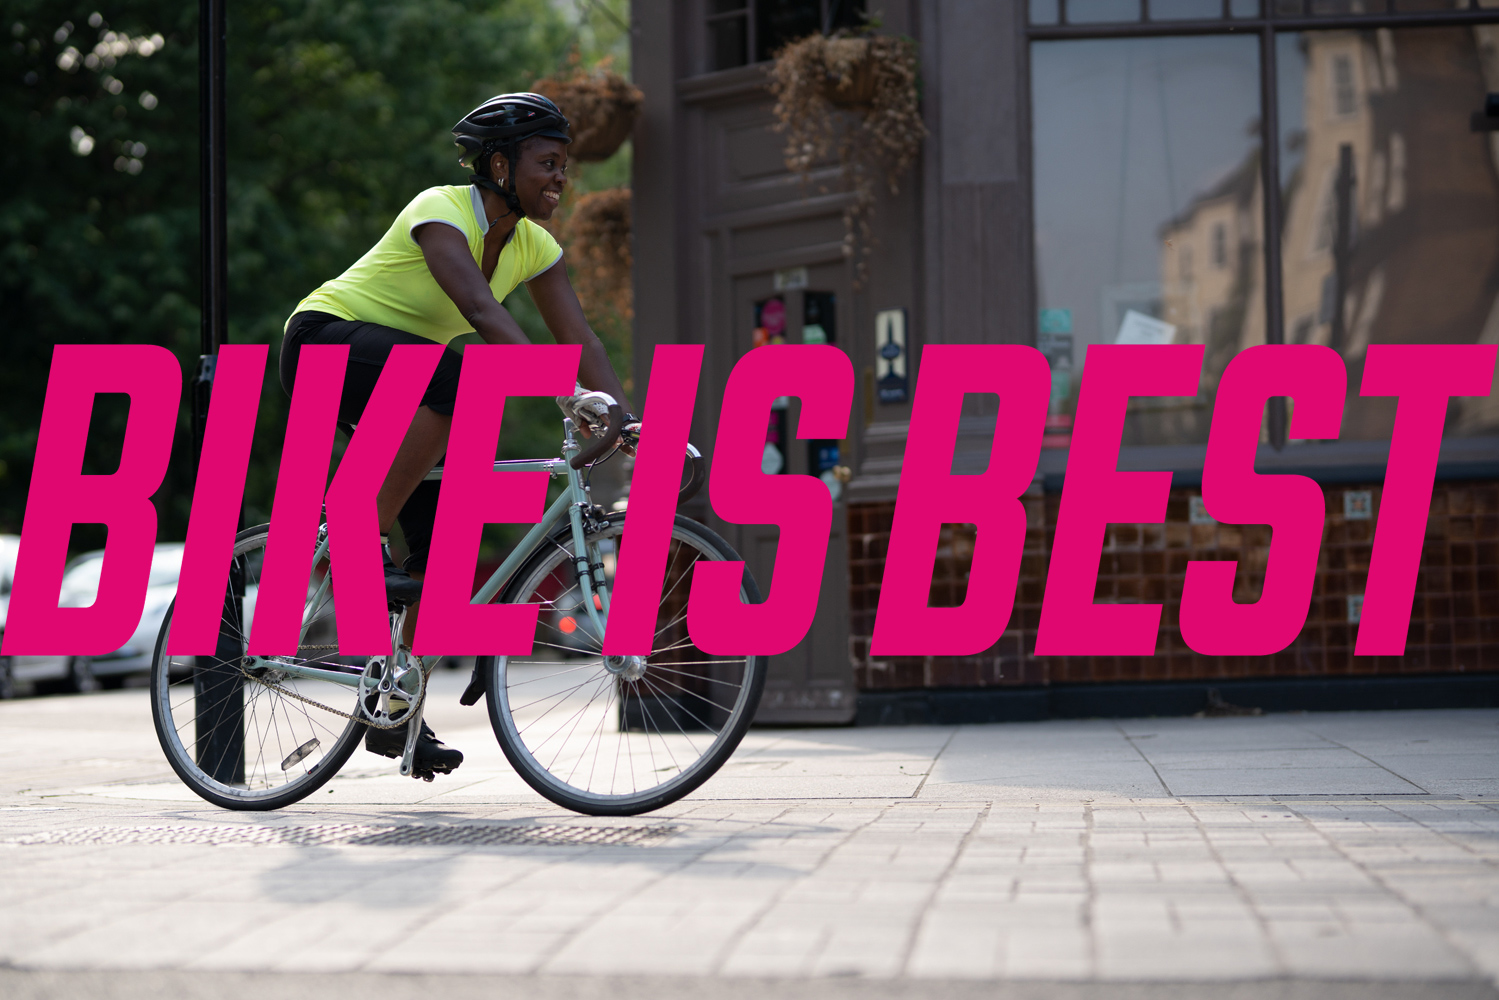 Cycling Industry Unites to Launch #BikeIsBest Campaign